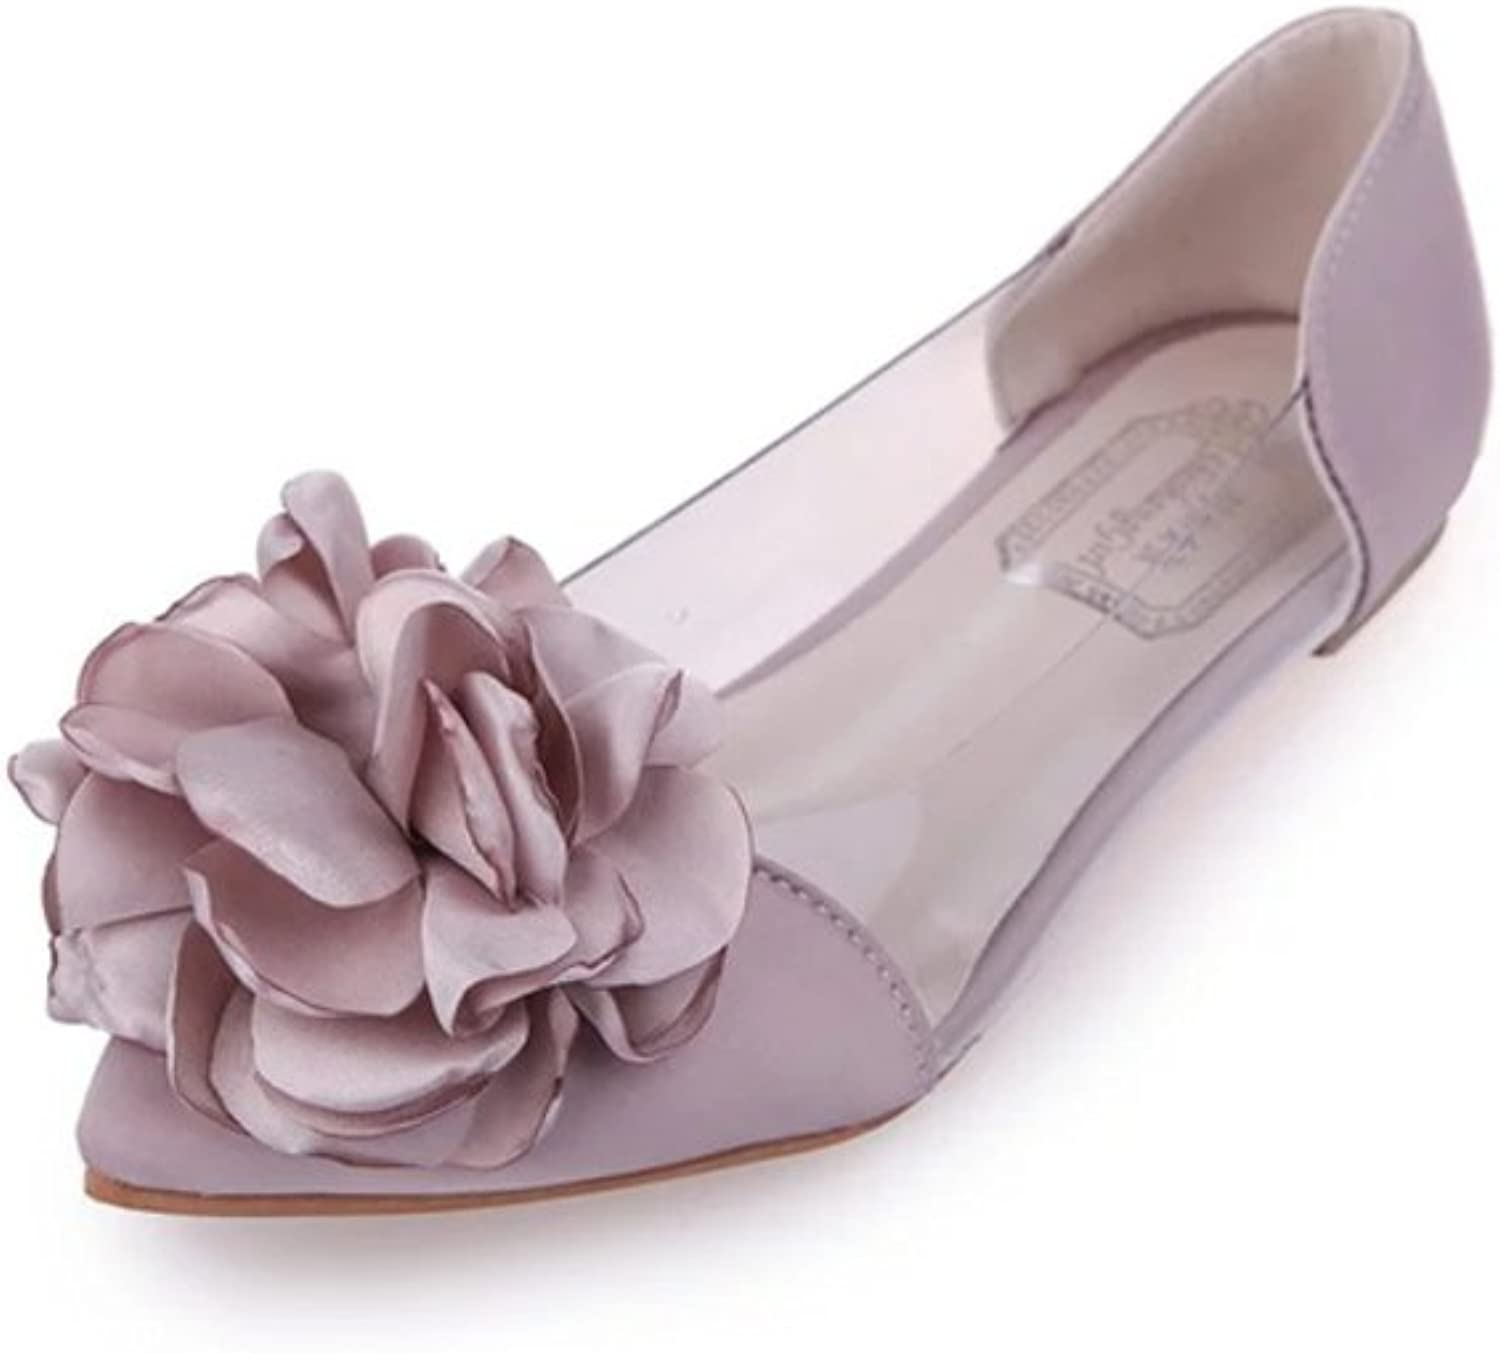 Huhuj Xia Chun Flowers Pointed shoes Sweet Sandals Transparent Set of Shallow Flats